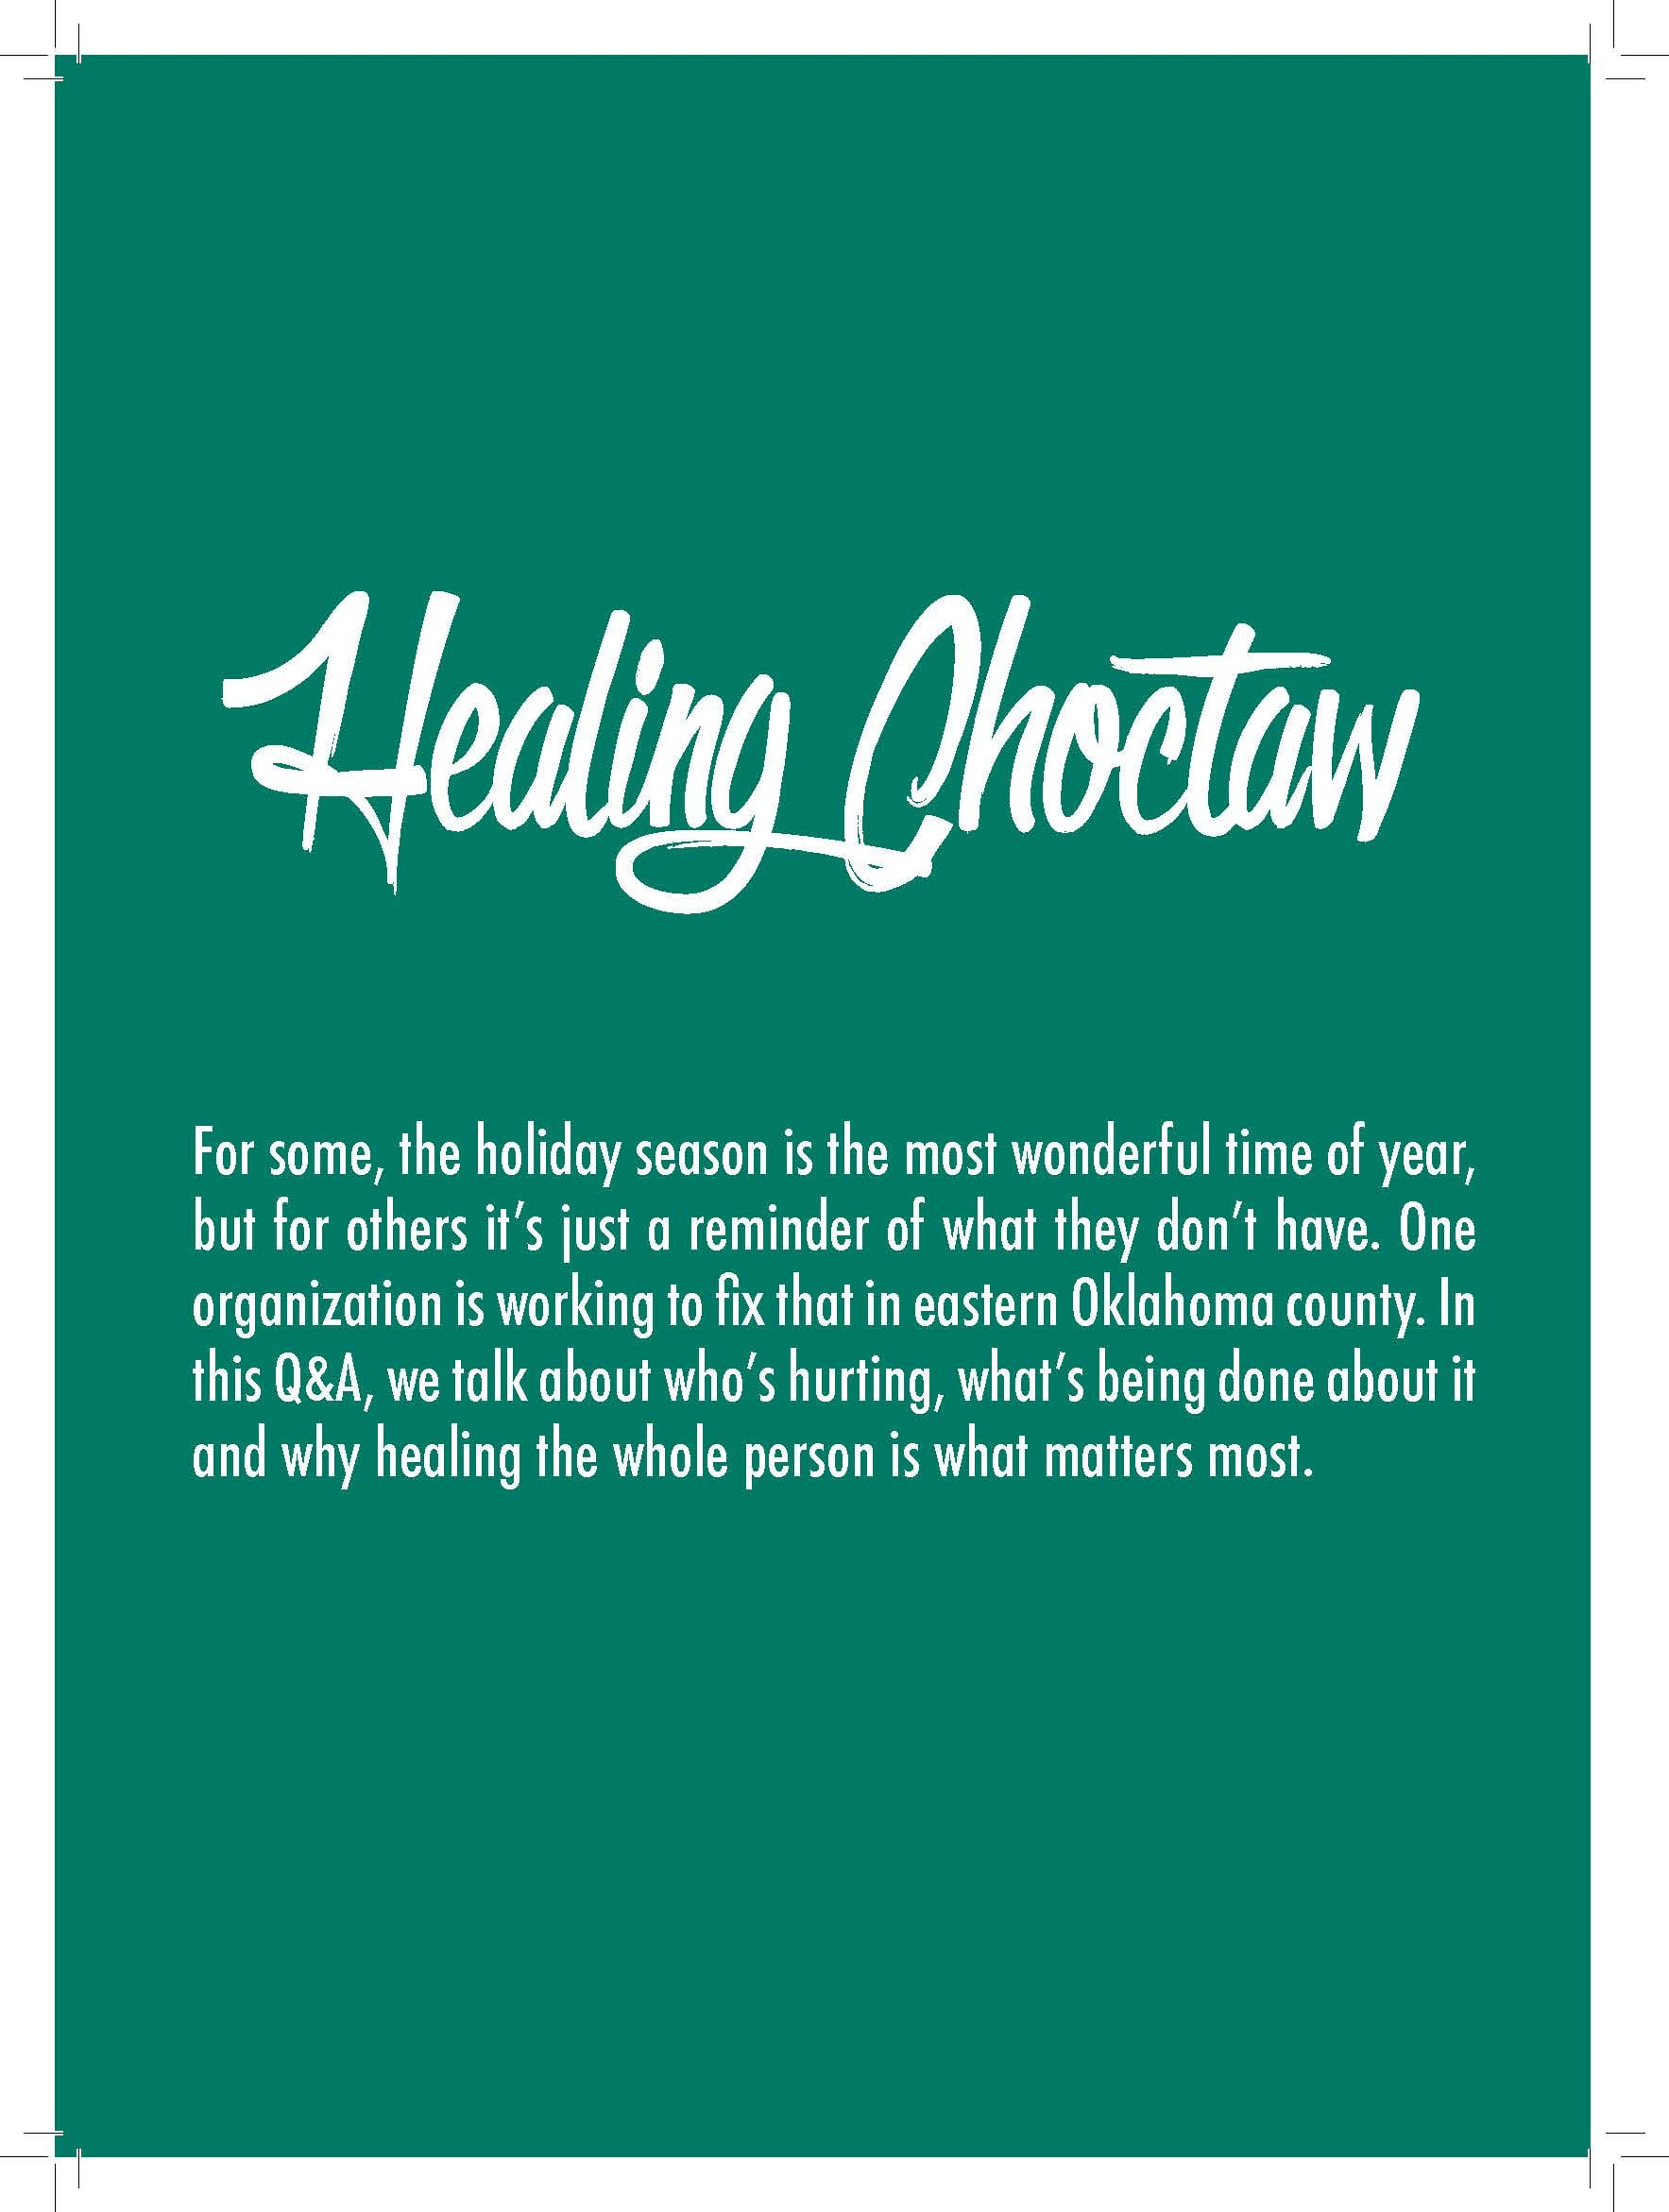 Healing Choctaw  For some, the holiday season is the most wonderful time of year,  but for others it's just a reminder of what they don't have. One  organization is working to fix that in eastern Oklahoma county. In  this Q&A, we talk about who's hurting, what's being done about it  and why healing the whole person is what matters most.